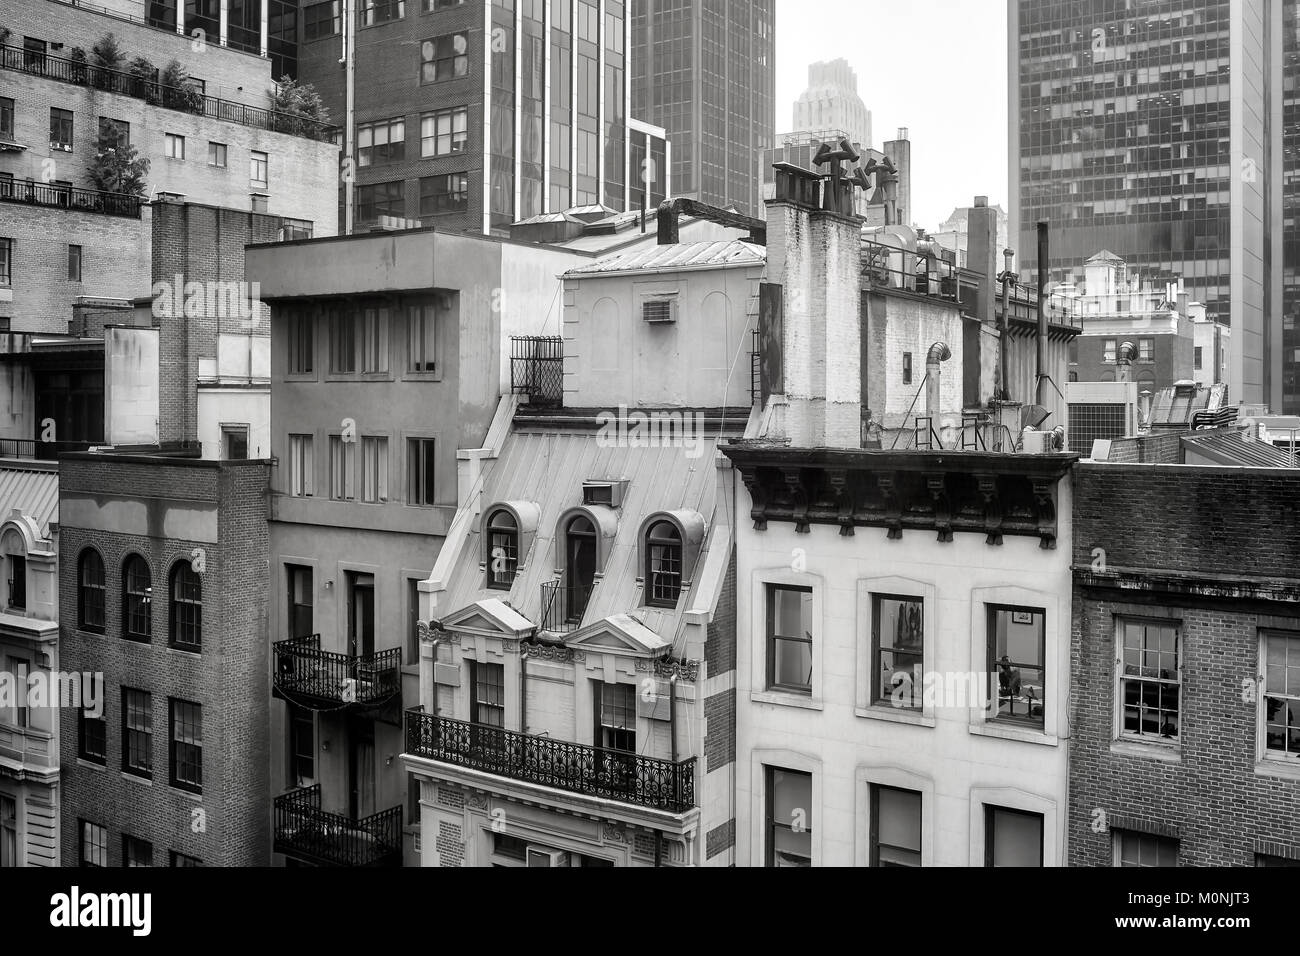 Black and white picture of old buildings in Midtown Manhattan on a rainy day, New York, USA. Stock Photo